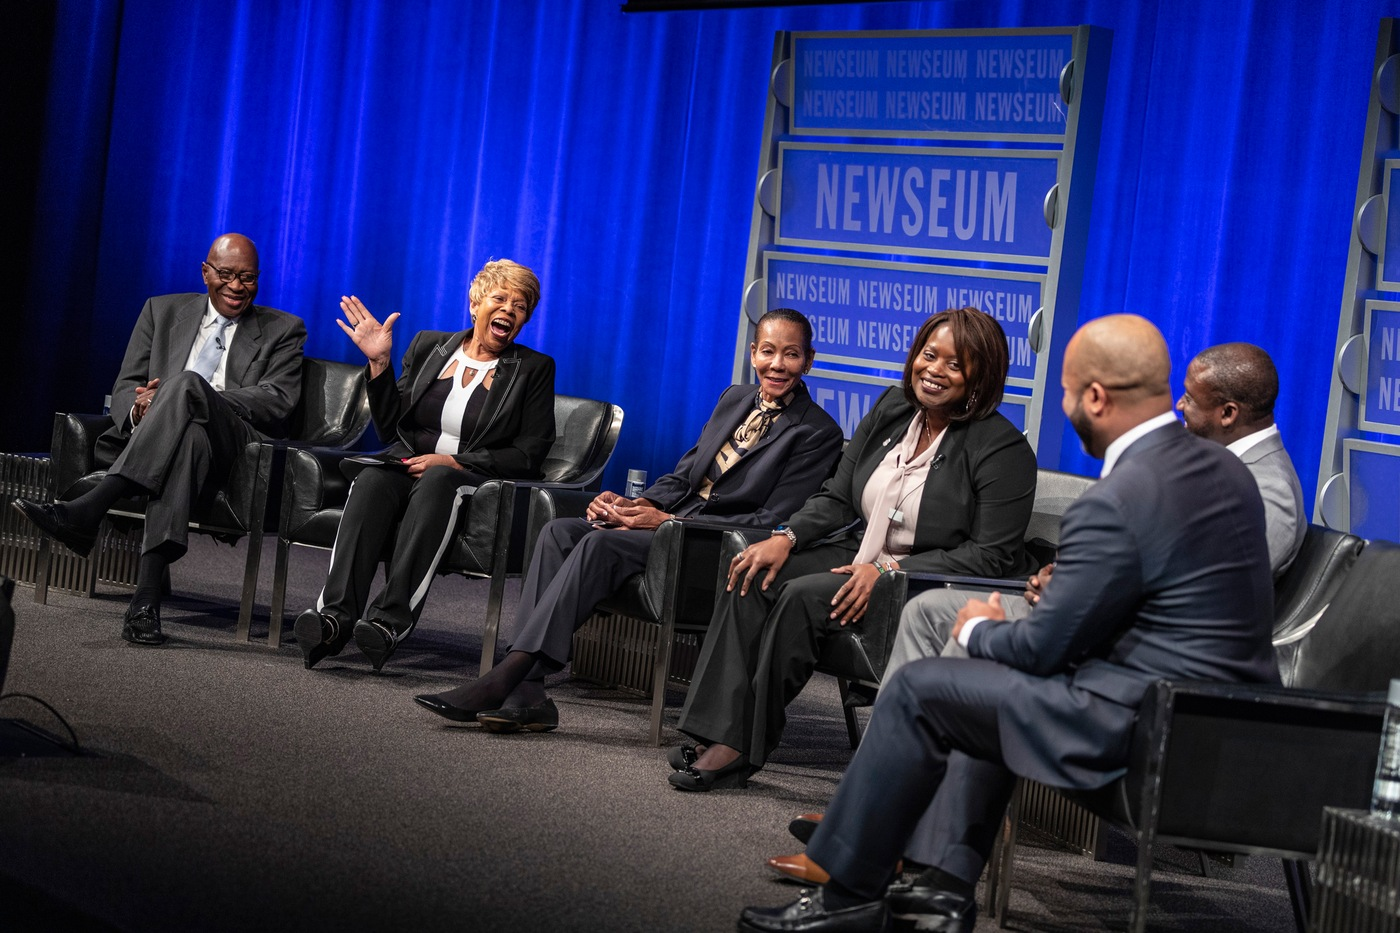 Current and retired FBI special agents participate in a panel discussion at the Newseum Friday, November 8, 2019, in Washington, D.C., celebrating the 100th anniversary of the first African-American FBI special agent.